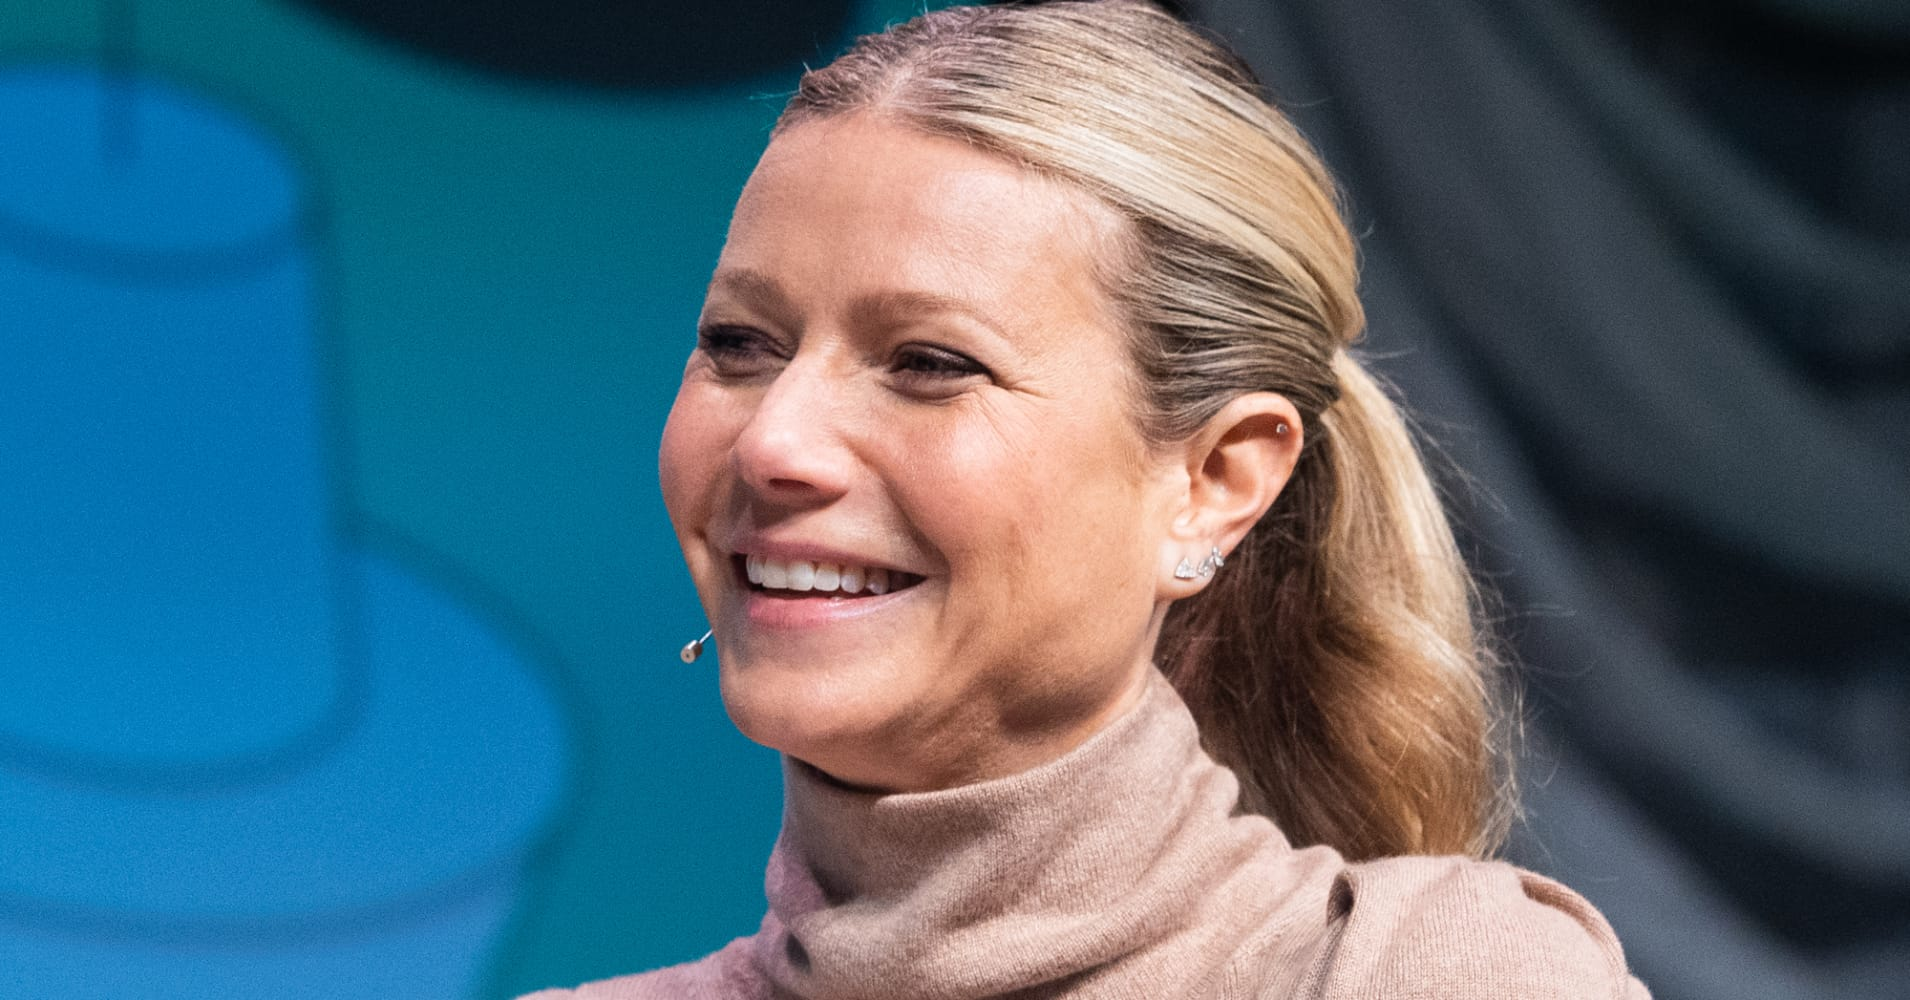 Jeff Bezos hasn't returned Gwyneth Paltrow's email yet — but here's what she would ask him